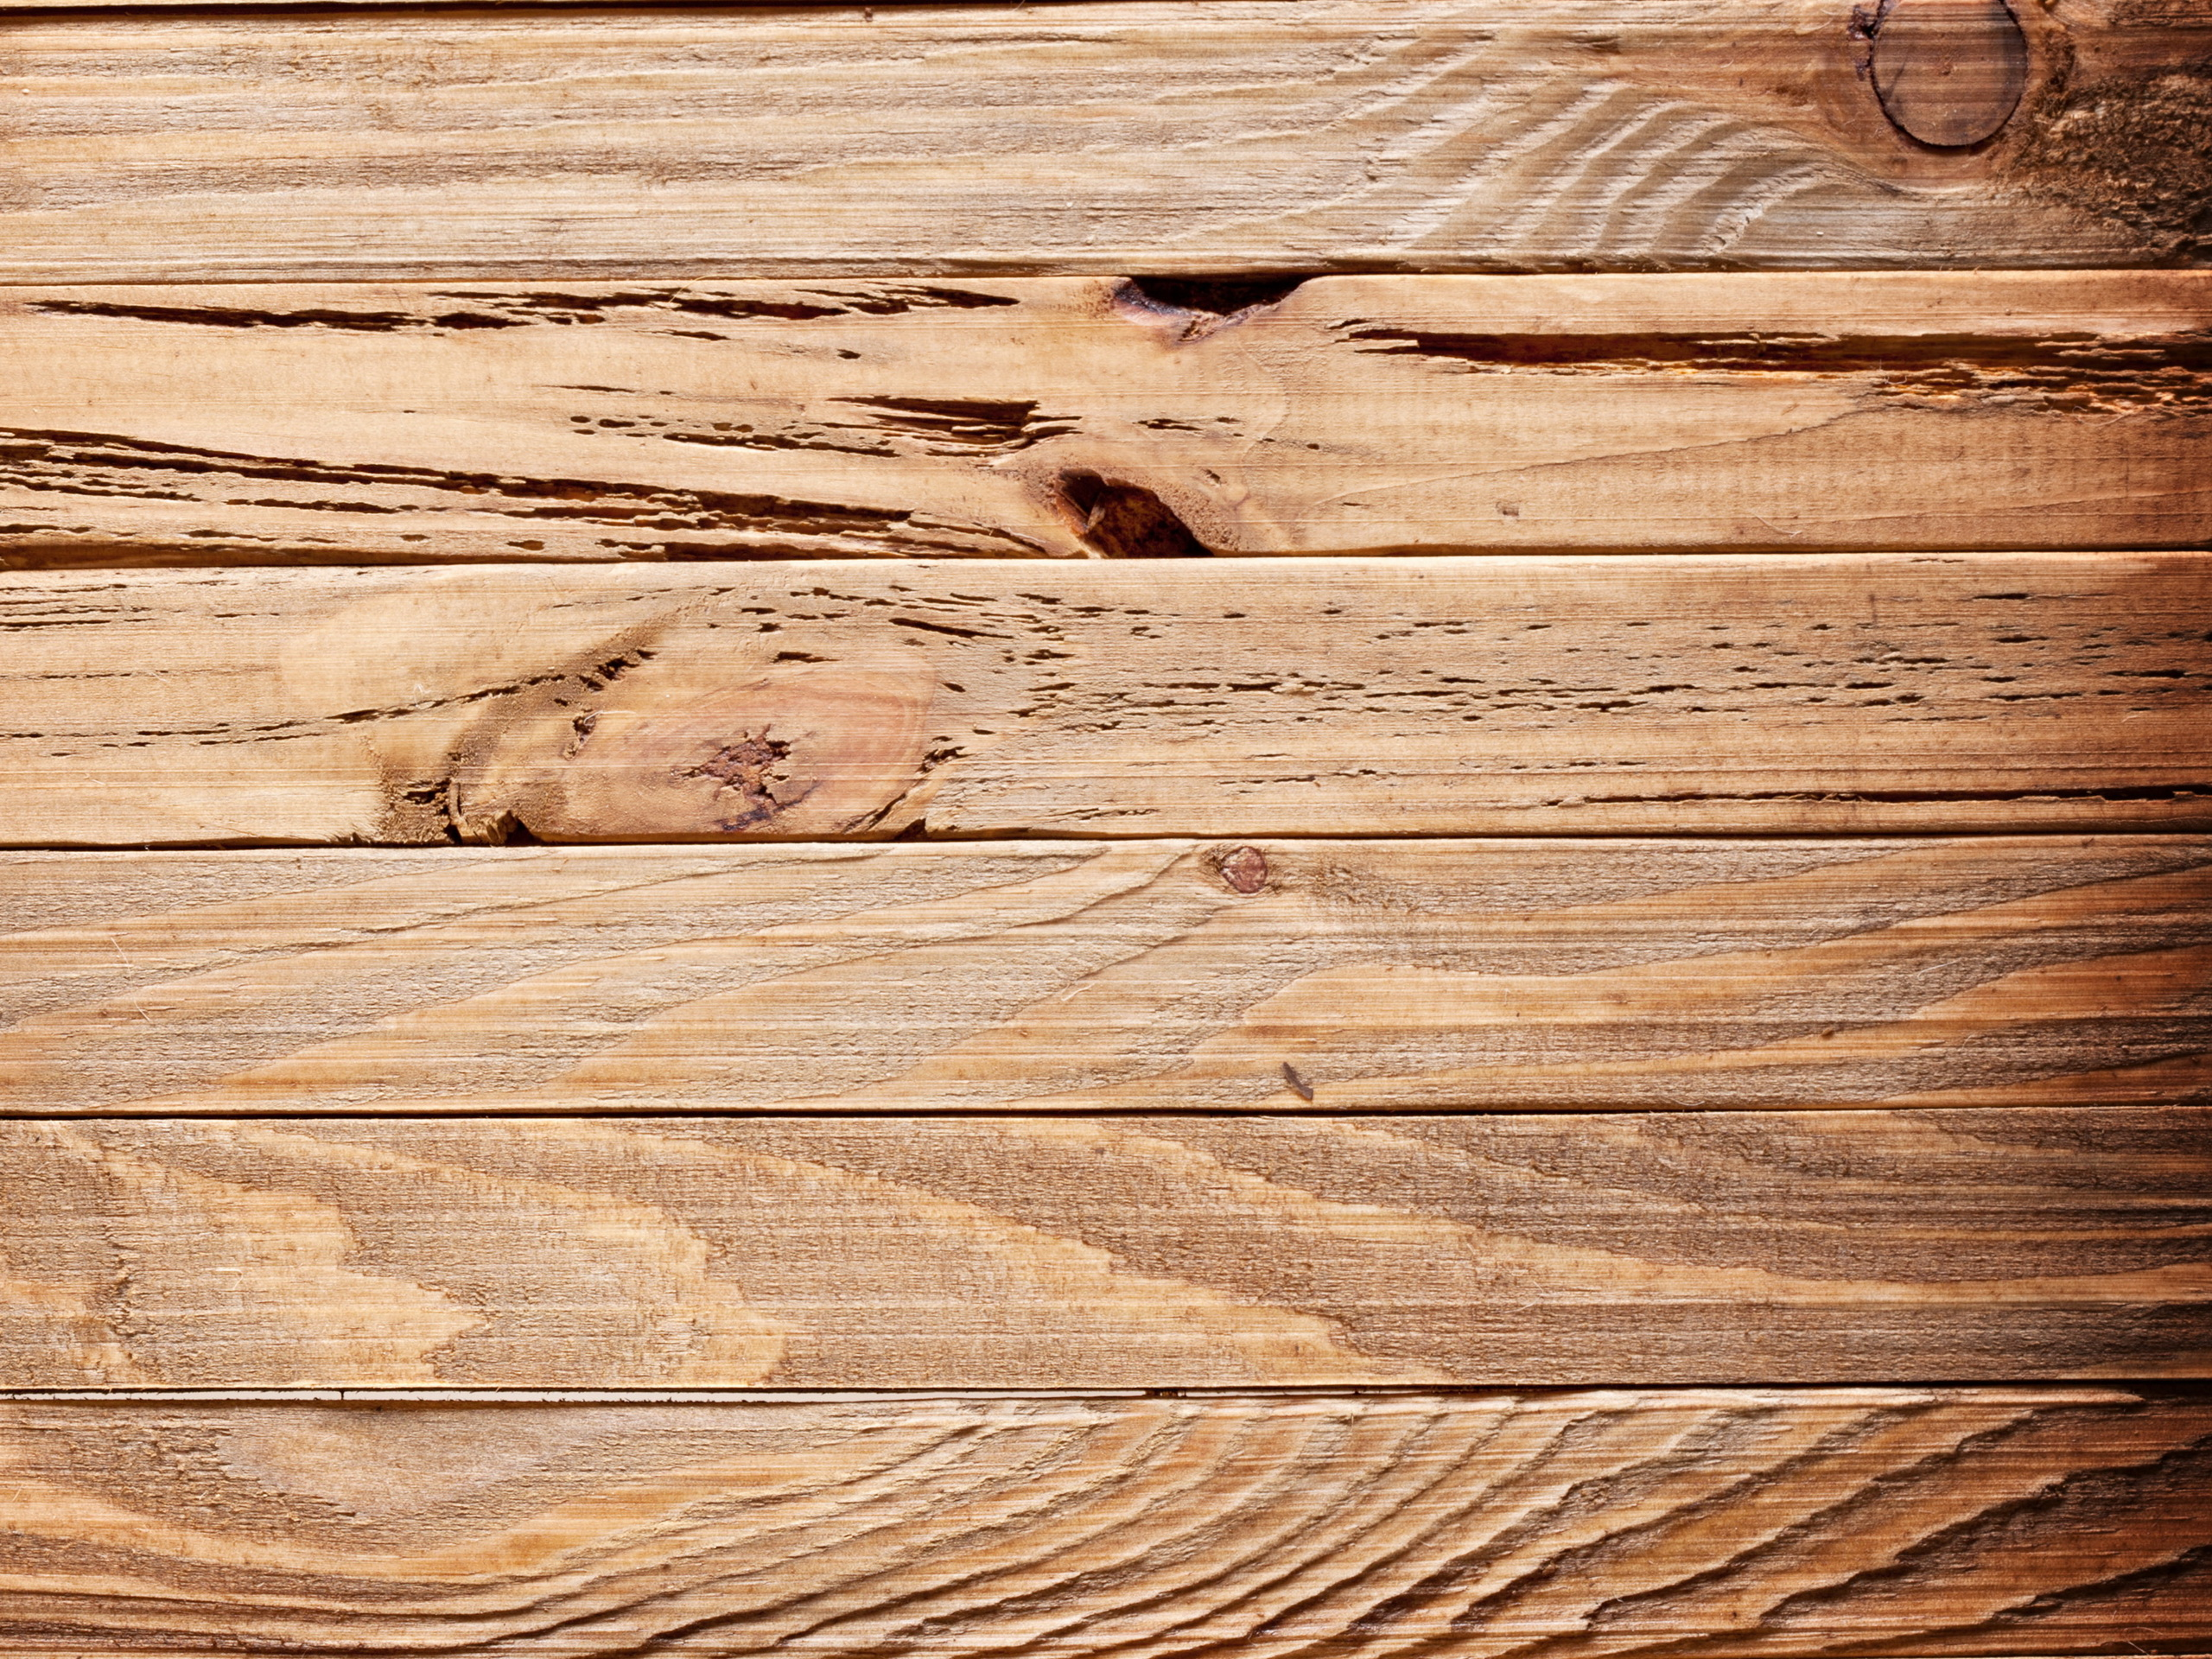 with wooden planks eaten by whom wallpapers55com   Best Wallpapers 2560x1920